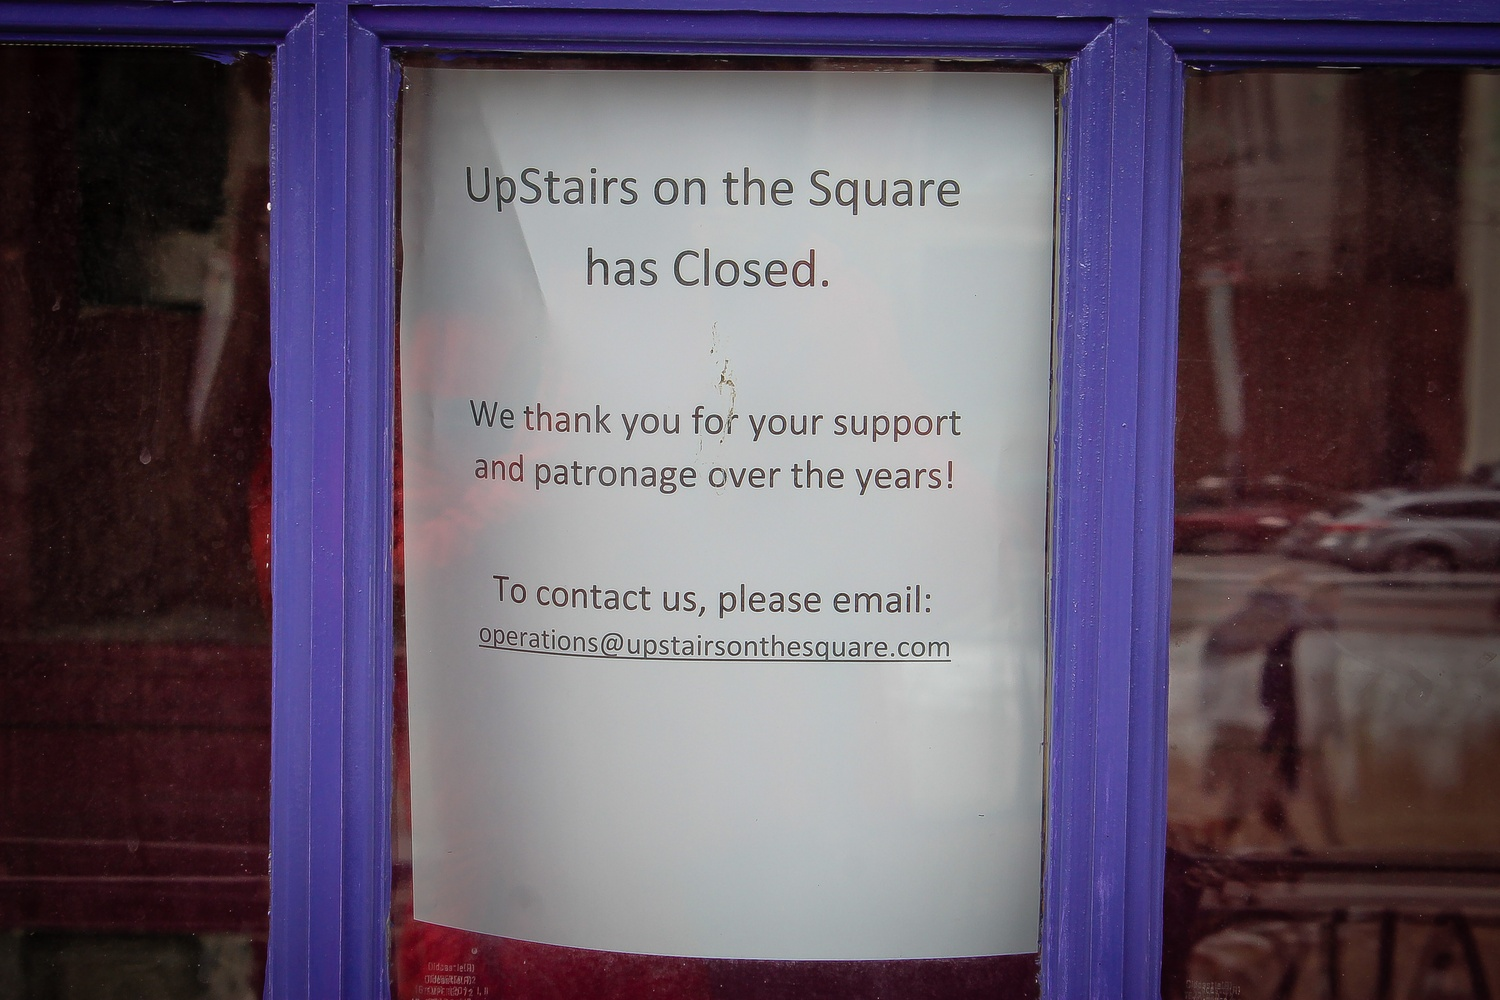 UpStairs on the Square, a New American and Italian restaurant, has recently announced its closure this year.